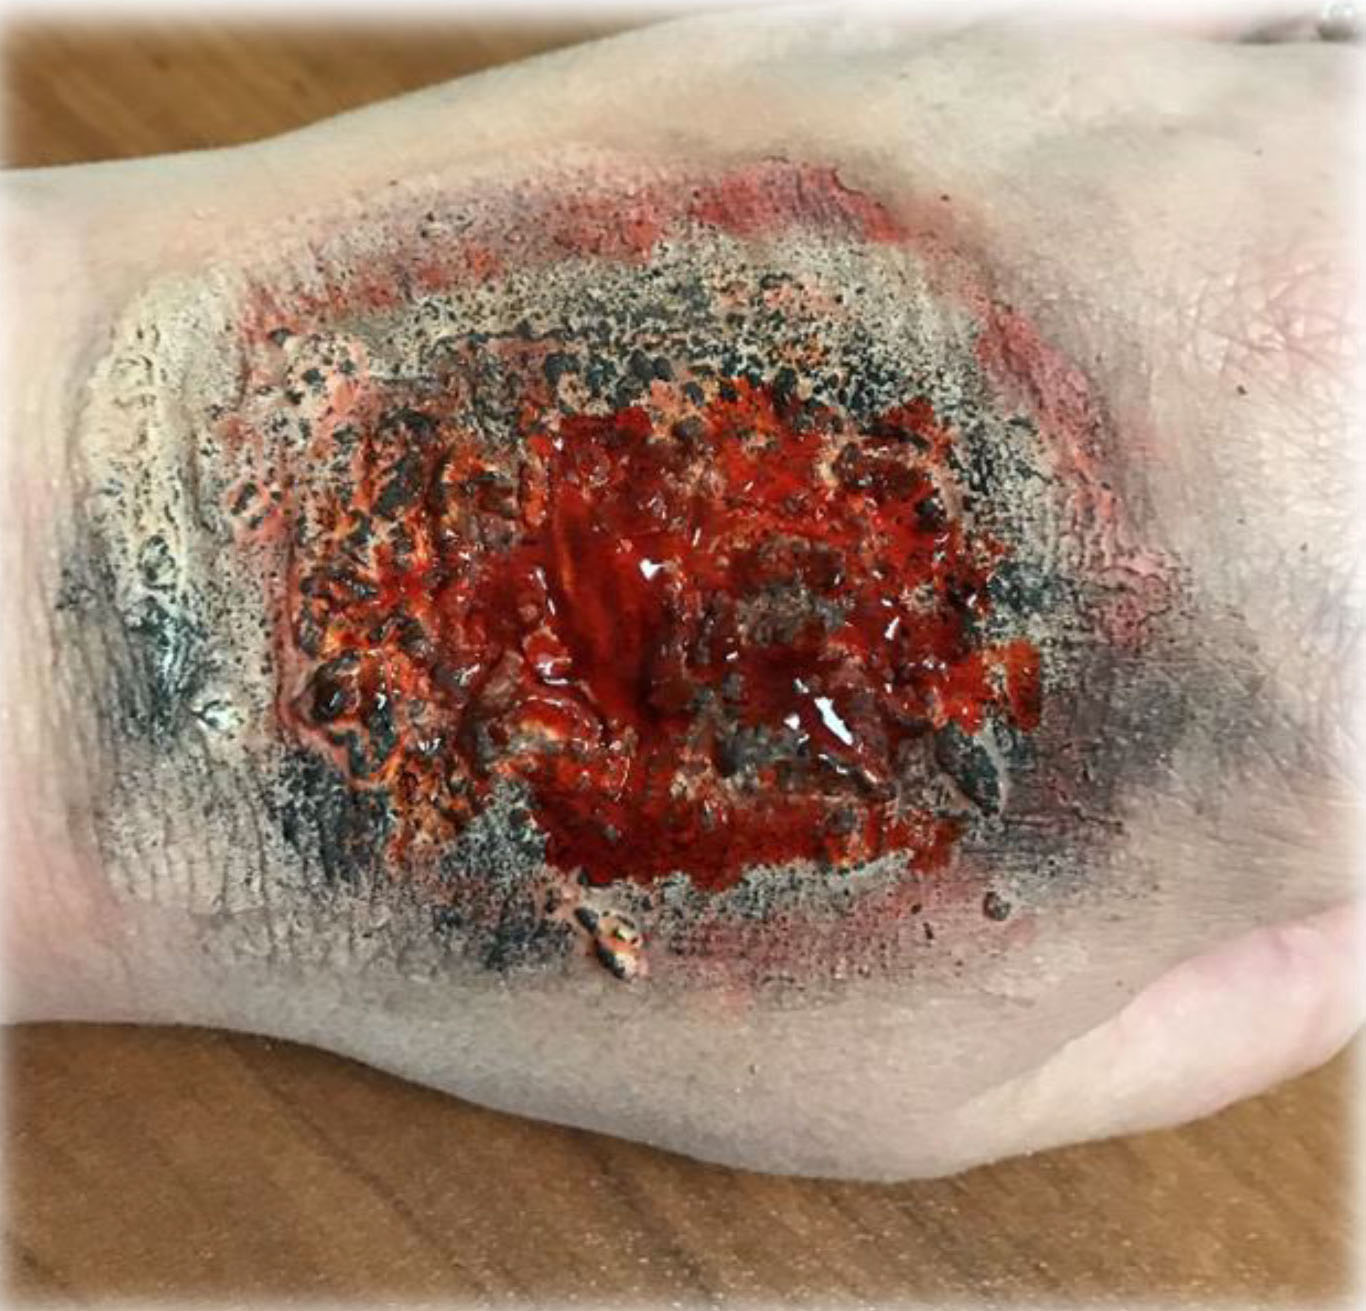 Moulage on hand